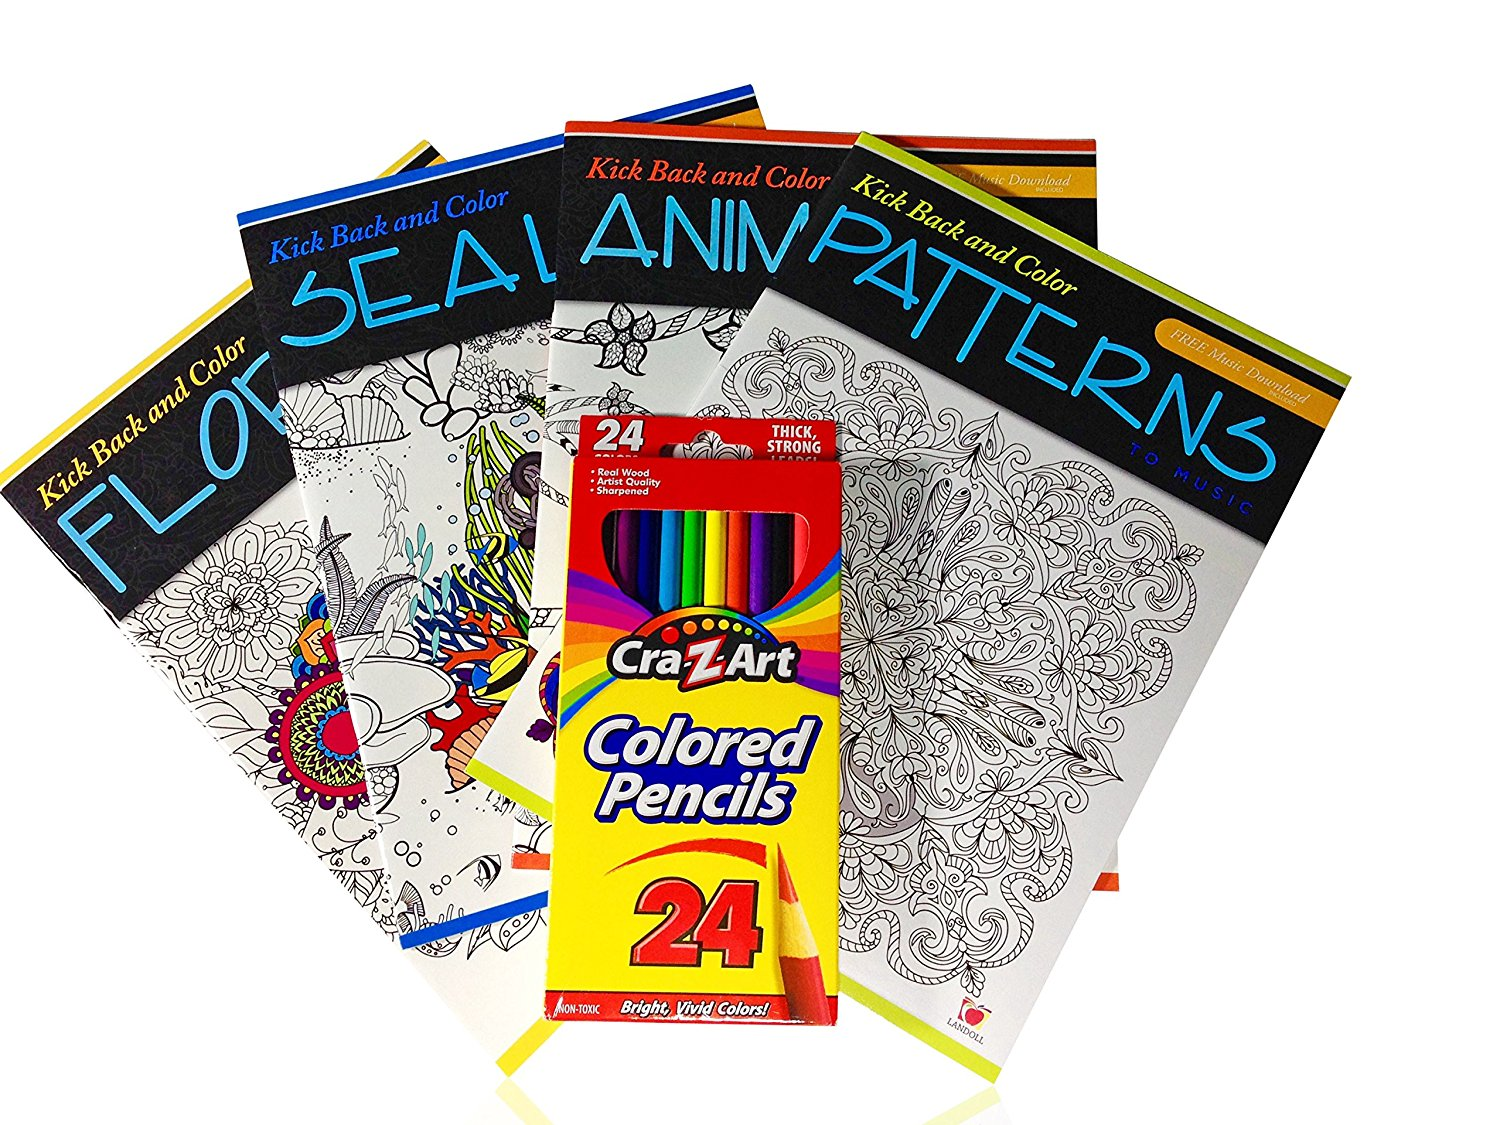 Color to Music: Adult Coloring Book Gift Set with Colored Pencils, Sharpener, and Music Downloads [6 Piece Bundle]